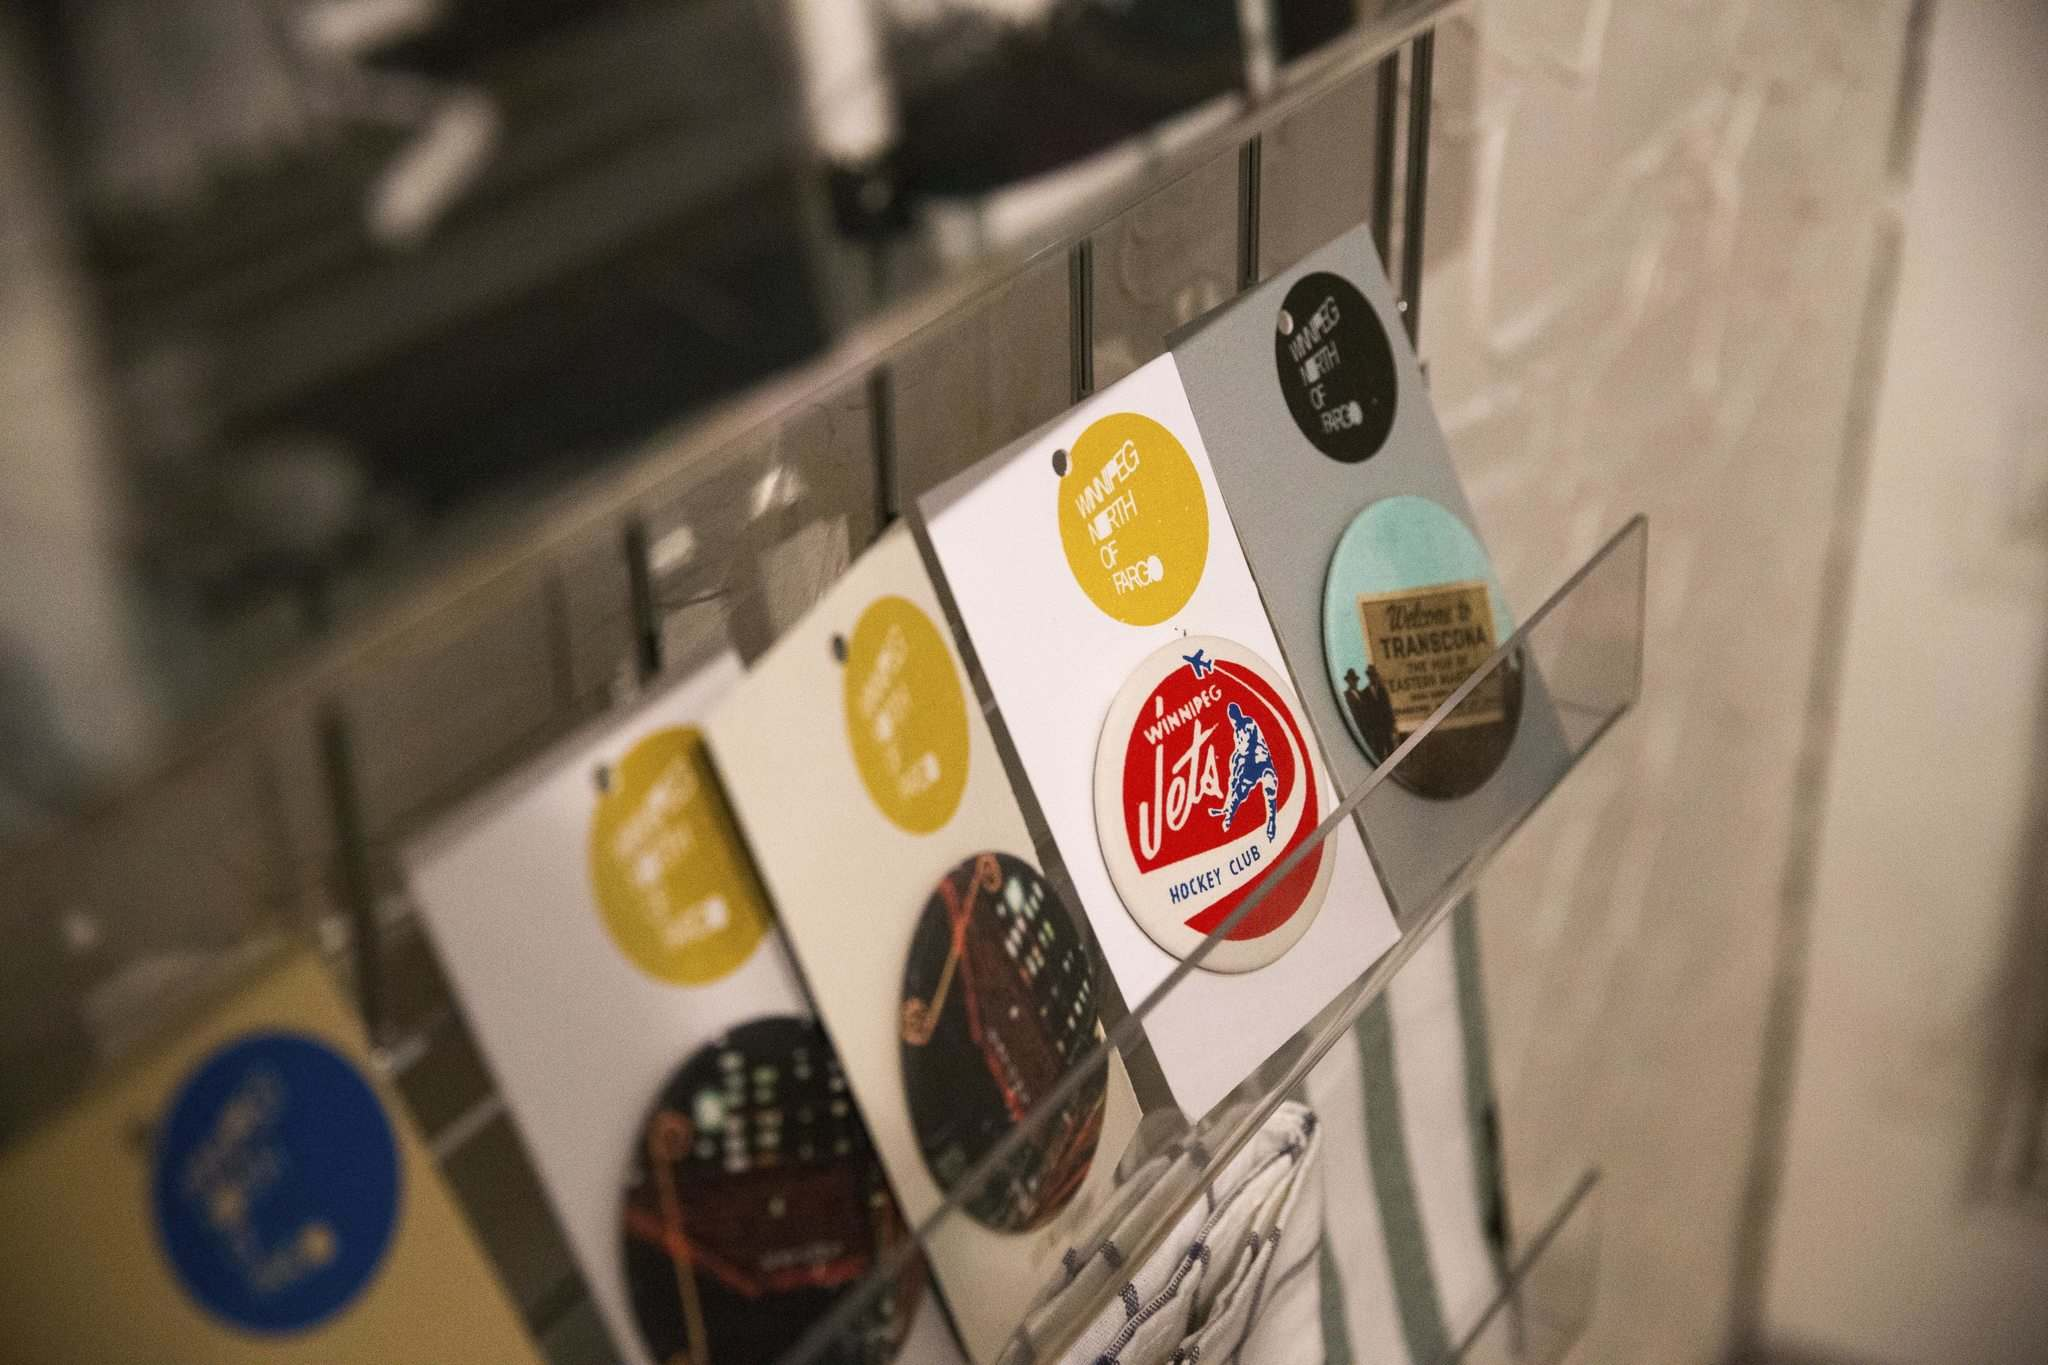 MIKAELA MACKENZIE / WINNIPEG FREE PRESS</p><p>Magnets, including one vintage Jets logo, are on display.</p>